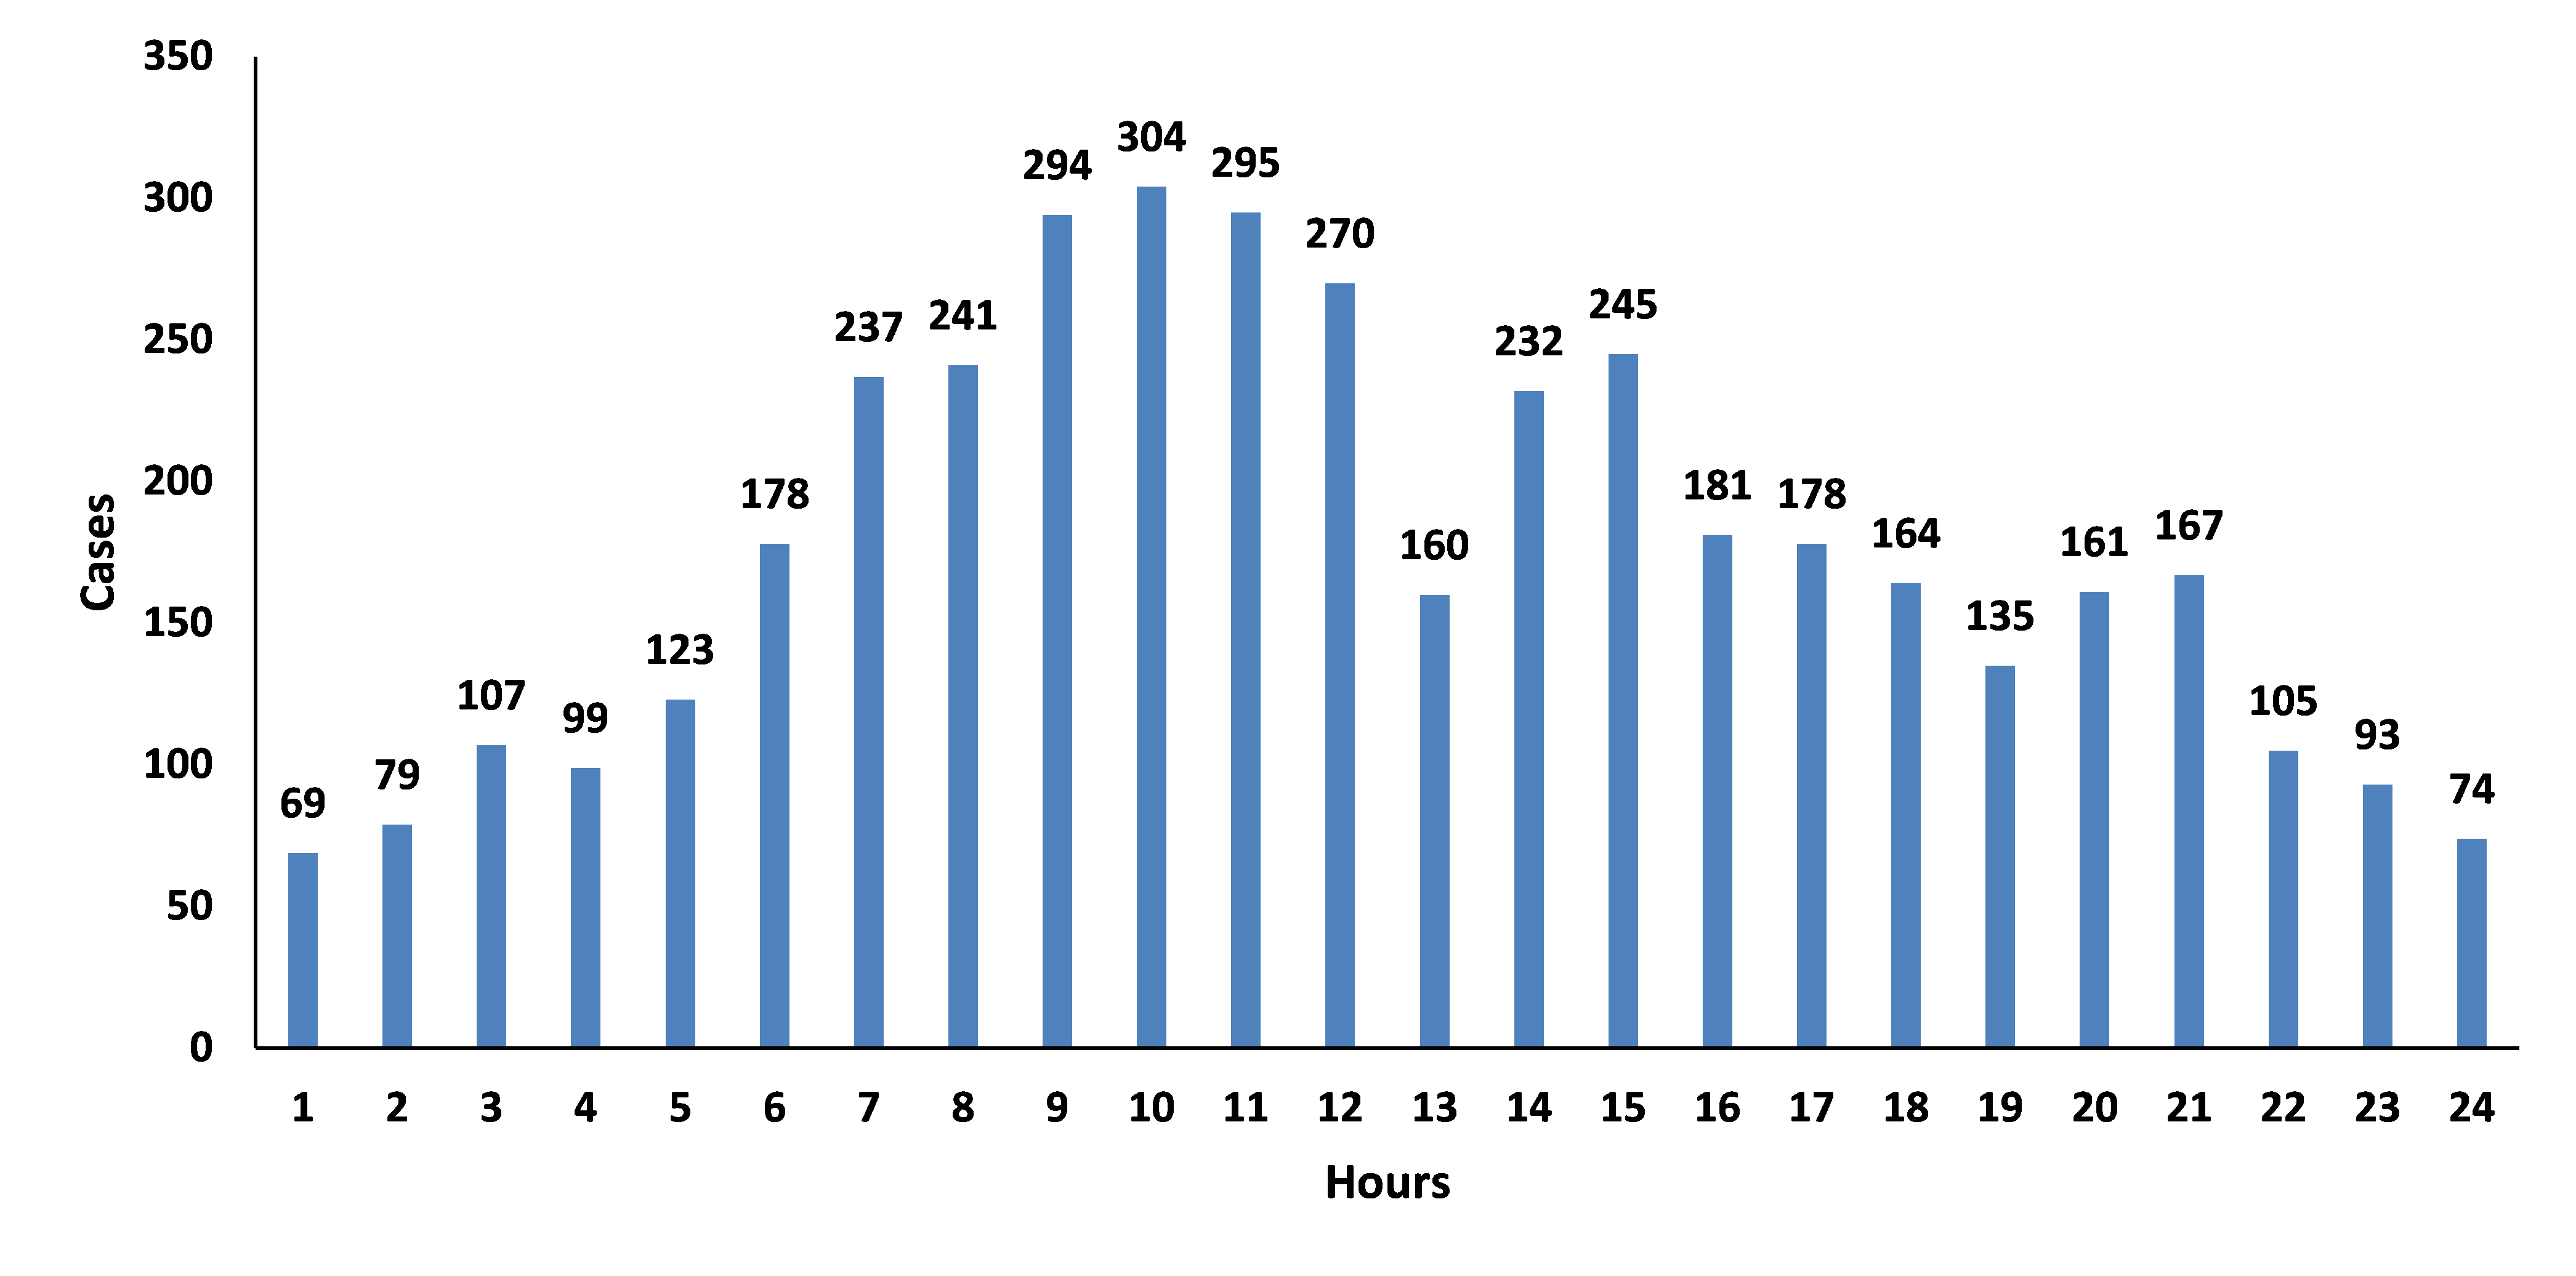 Hourly-Distribution-of-Casualty-Accidents-in-China-from-2006-to-May-2018